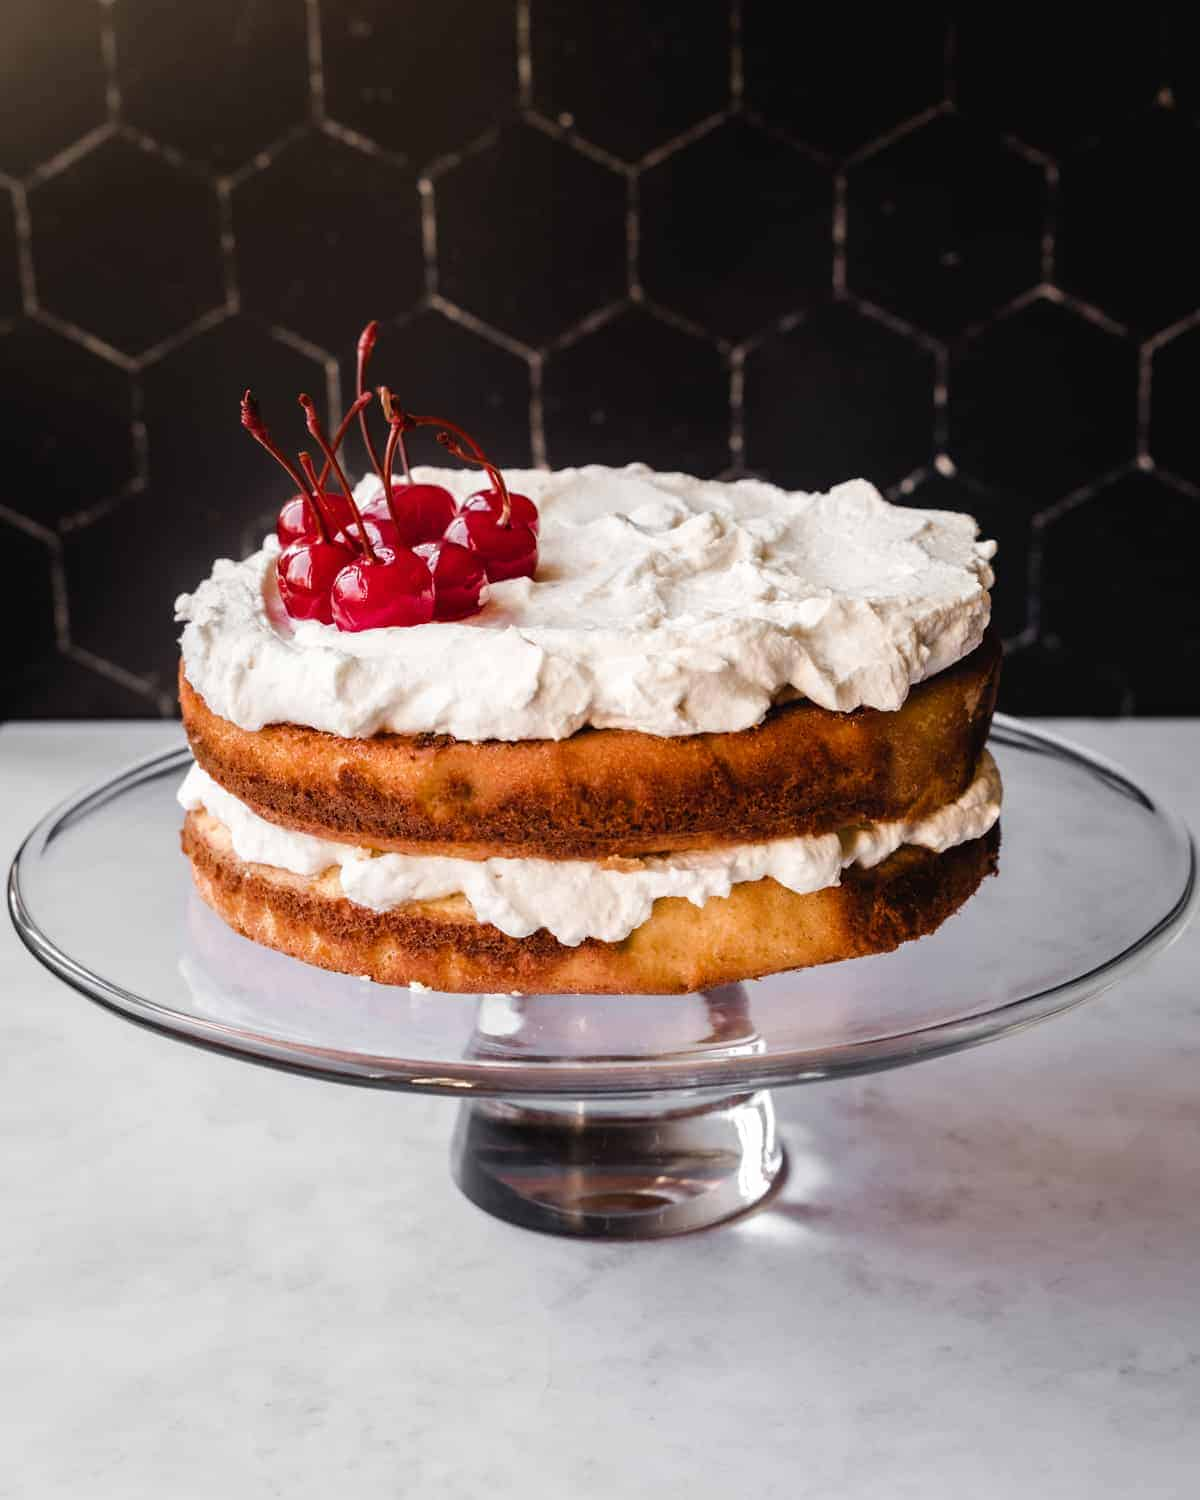 almond layer cake with cherry whipped cream on a glass cake stand